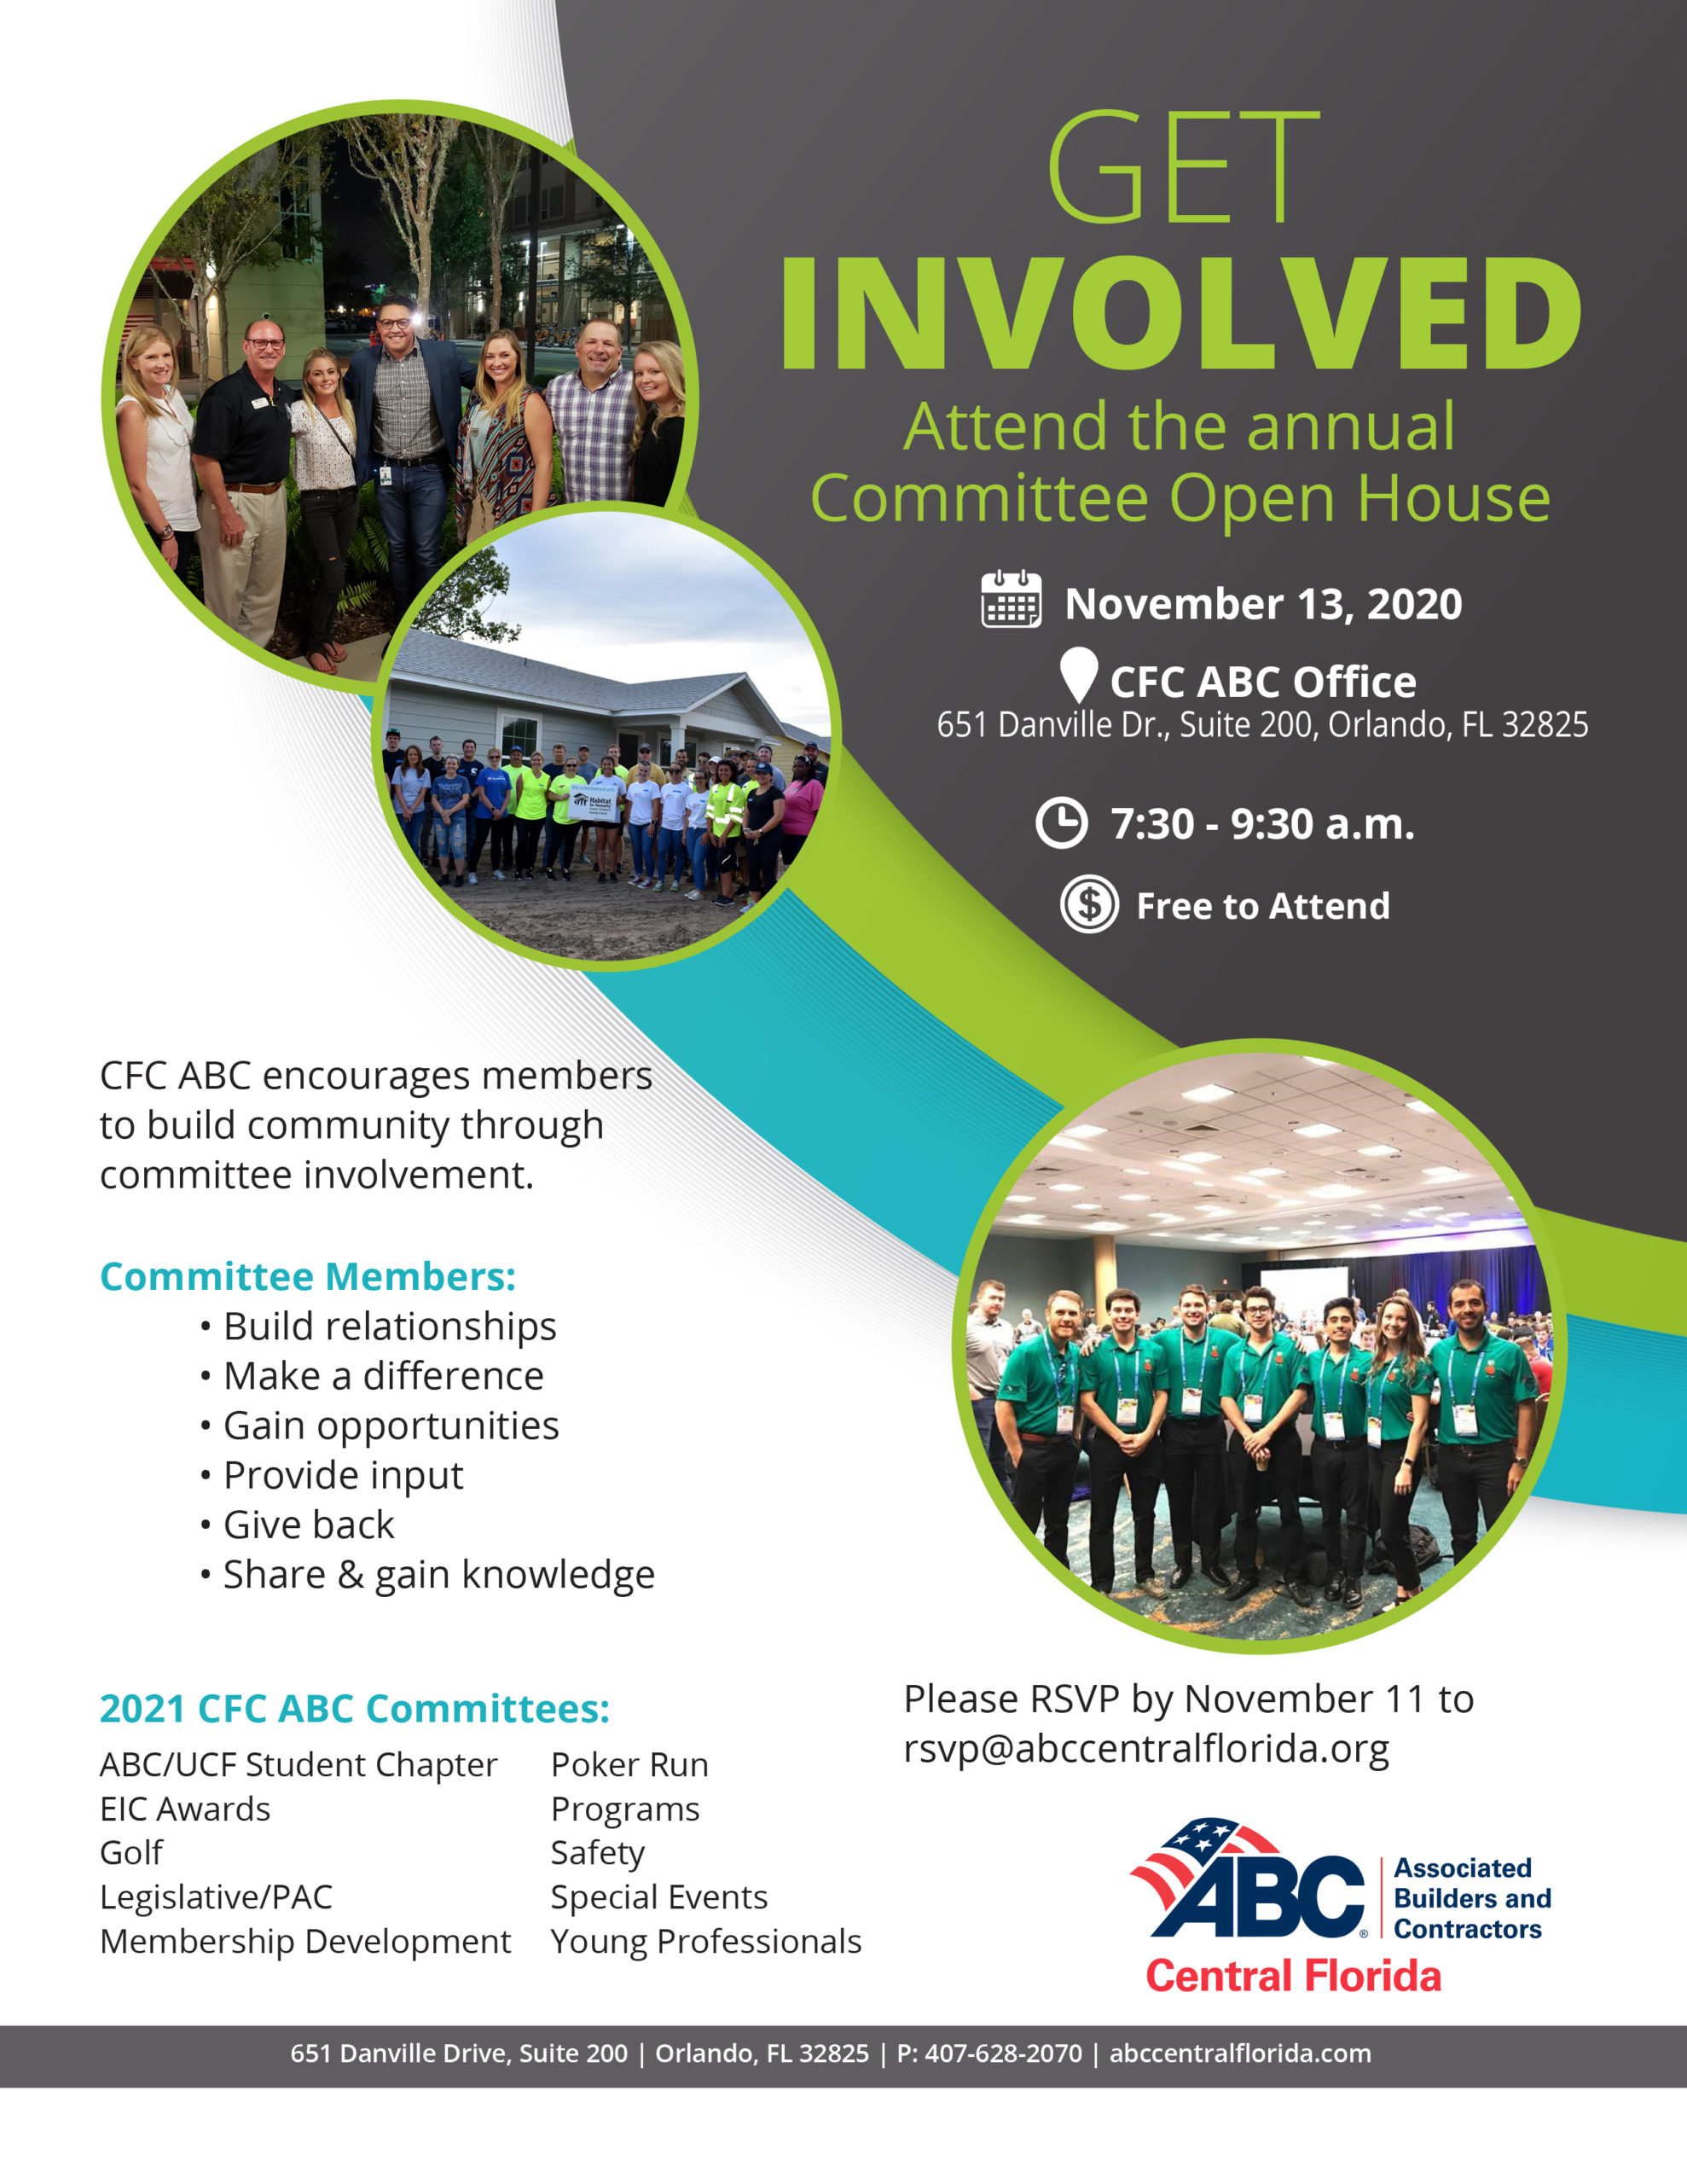 Committee Open House @ CFC ABC Office